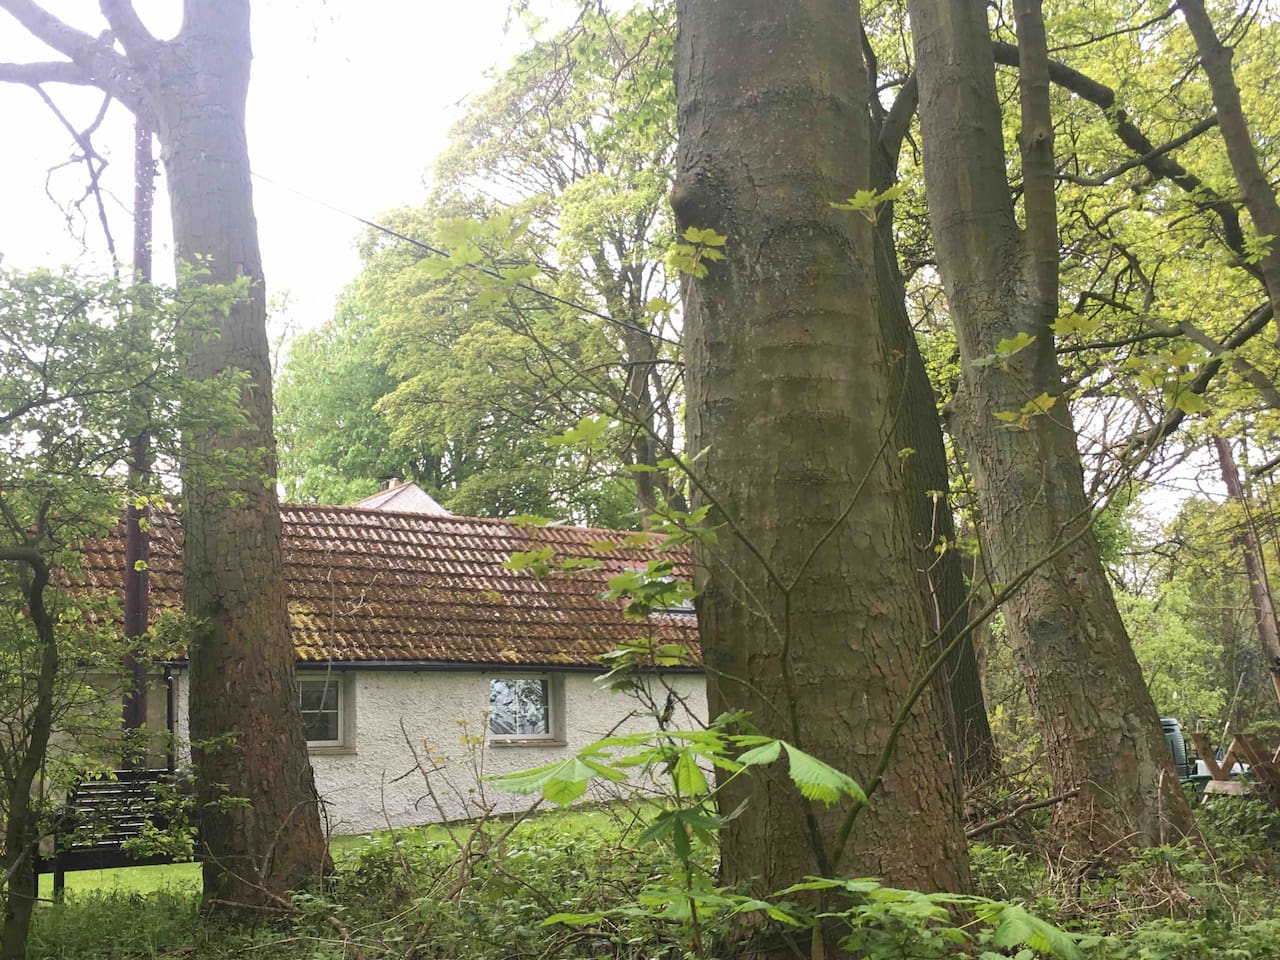 Fairbeck Lodge situated next to an idyllic wood.